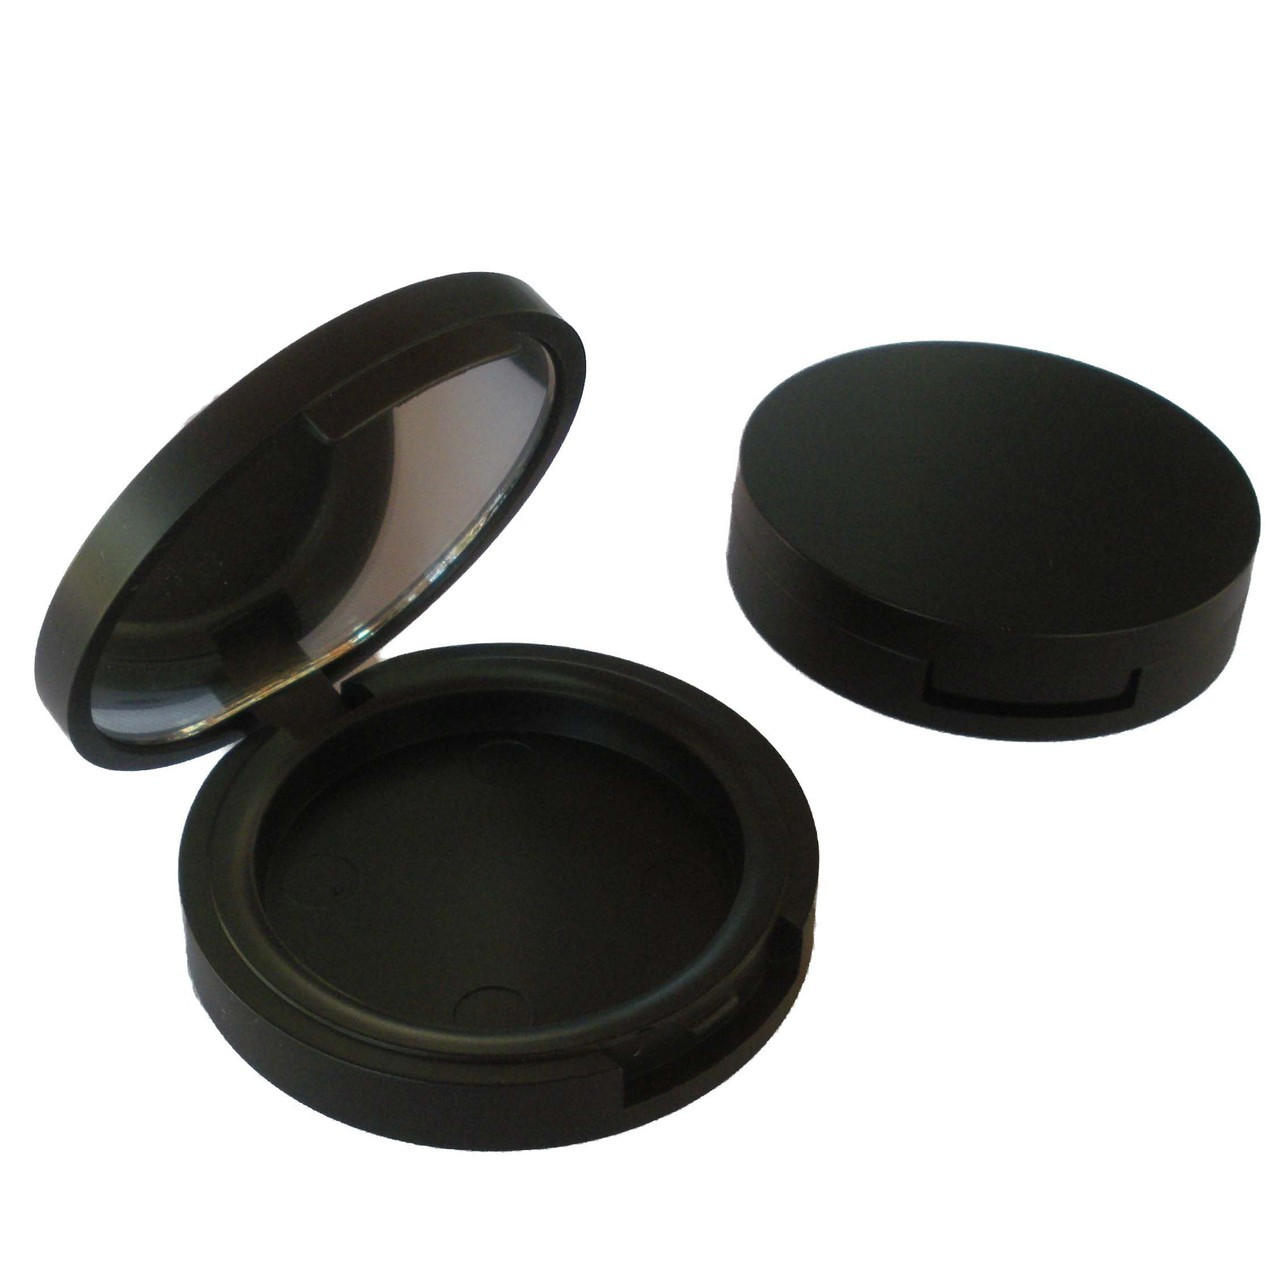 Round Matt Black Blush Compact 37mm (Indent)